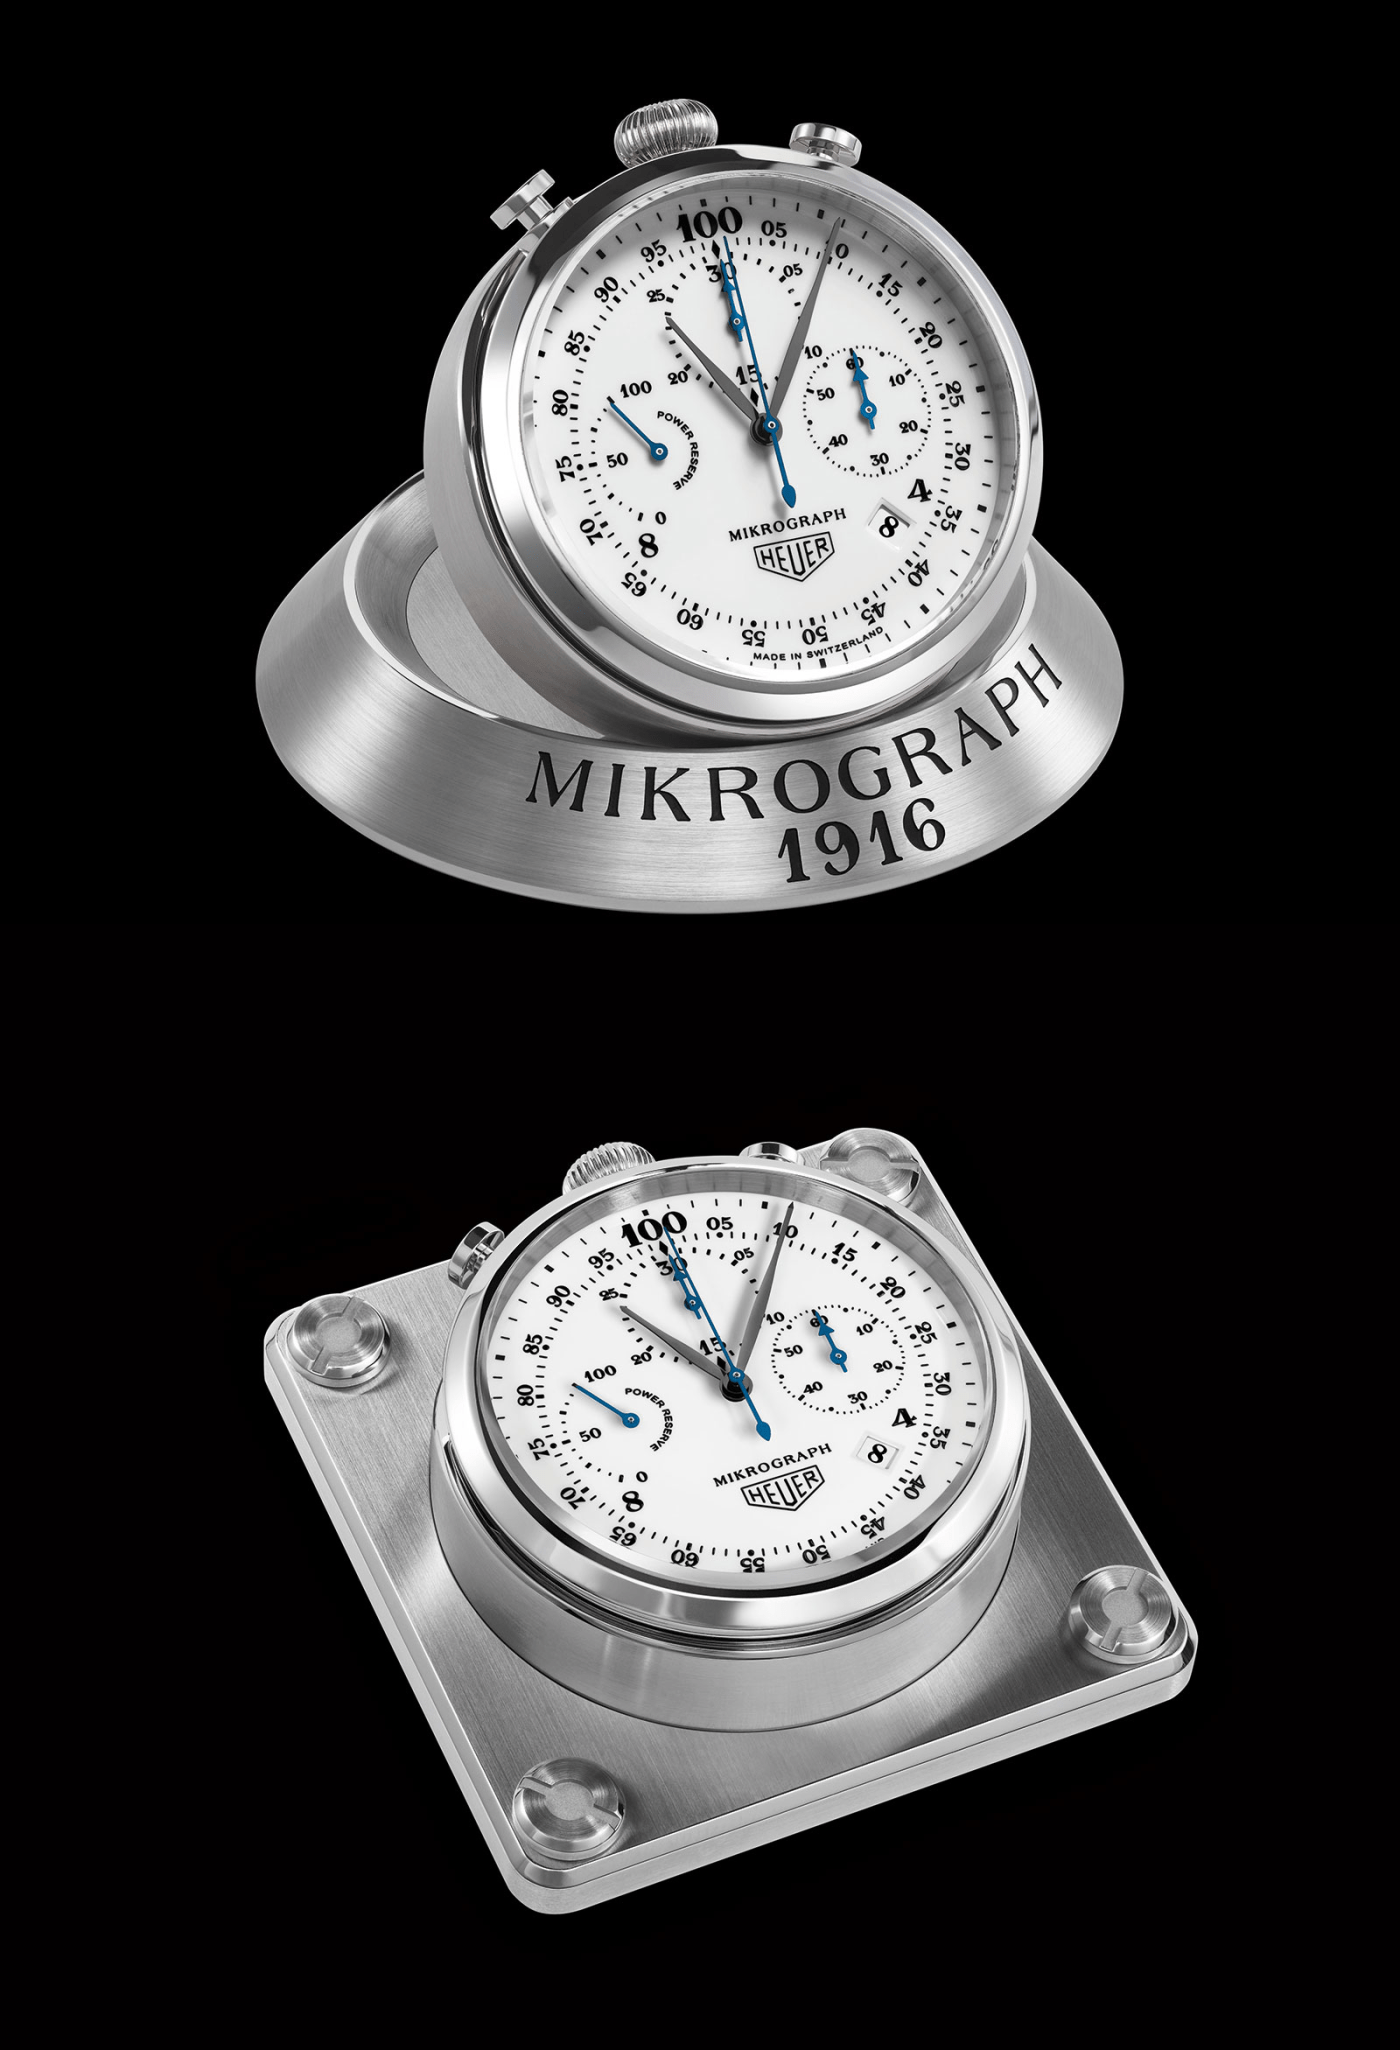 TAG Heuer Carrera Mikrograph Anniversary Edition table clock and dashboard mount